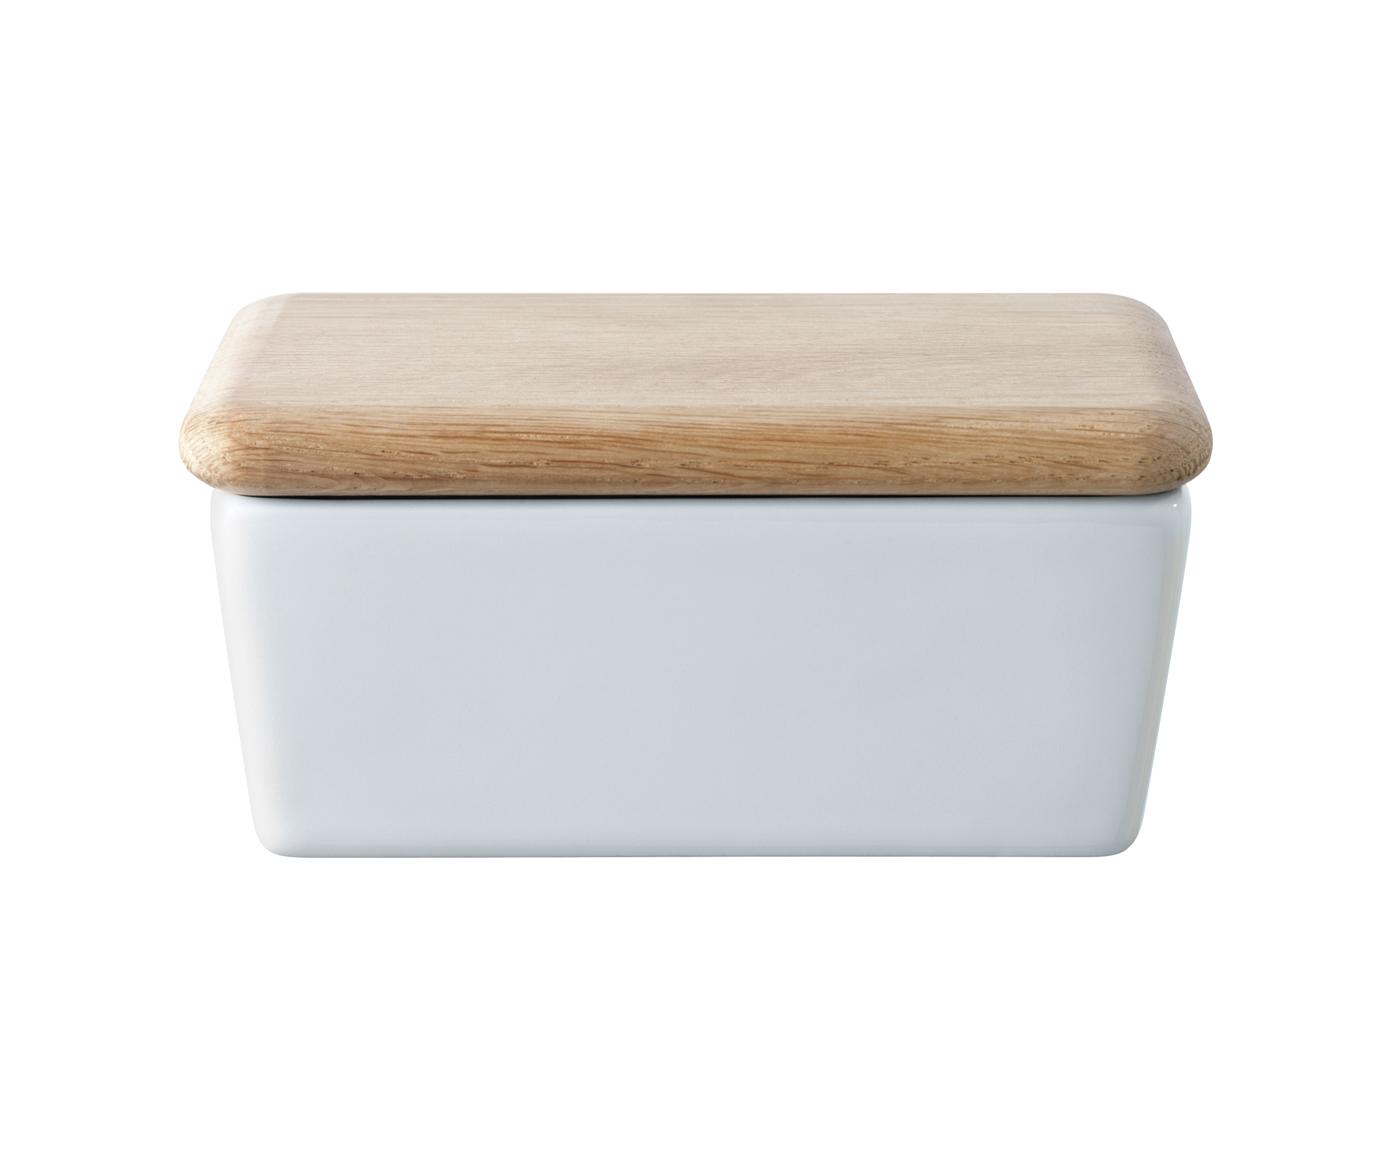 Mantequillera Dine, Blanco, roble, An 14 x Al 7 x F 10 cm